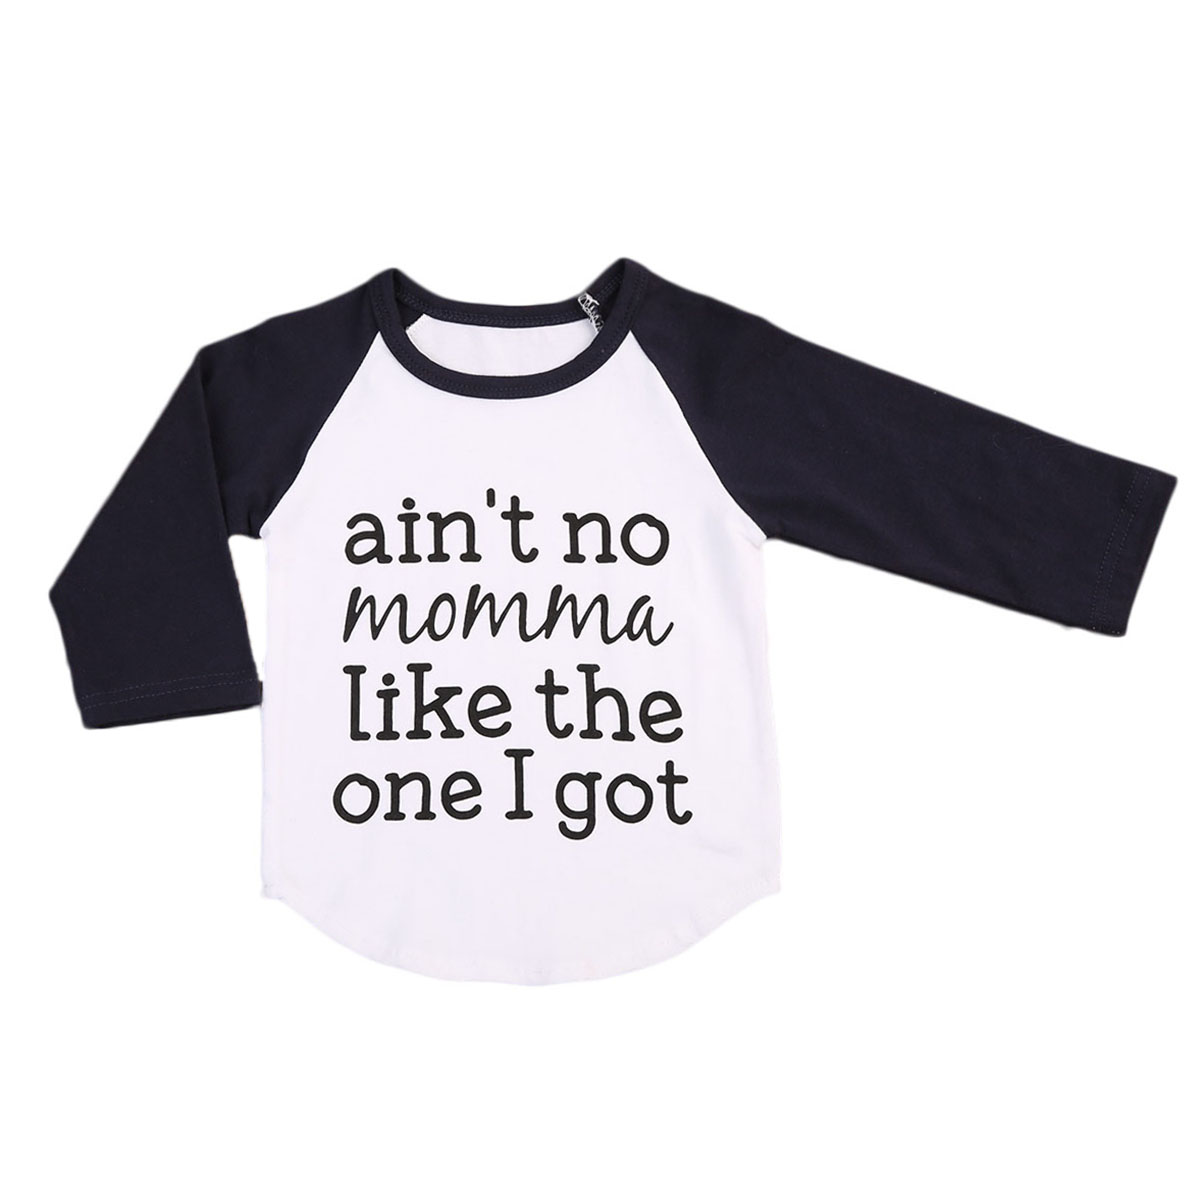 New-Fashion-T-shirts-Newborn-Infant-Kids-Baby-Boy-Tops-Cotton-Long-Sleeve-Letter-Print-Infant-Boys-Loose-Clothes-T-shirt-Tops-1